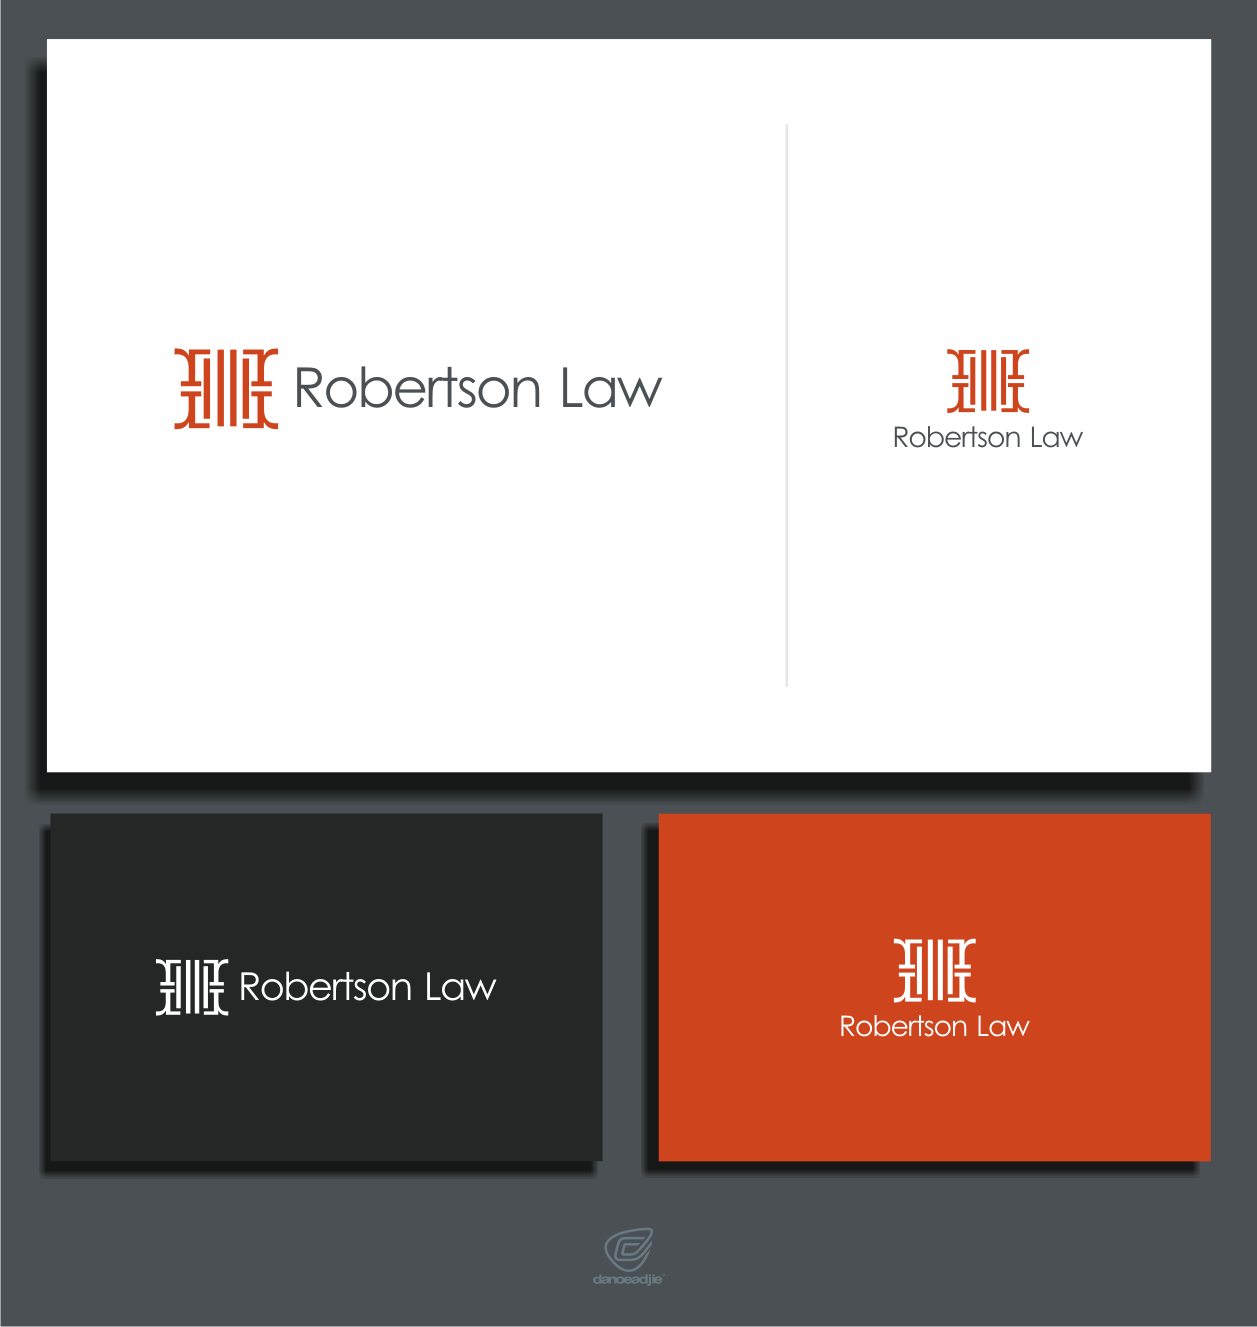 Help Robertson Law with a new logo